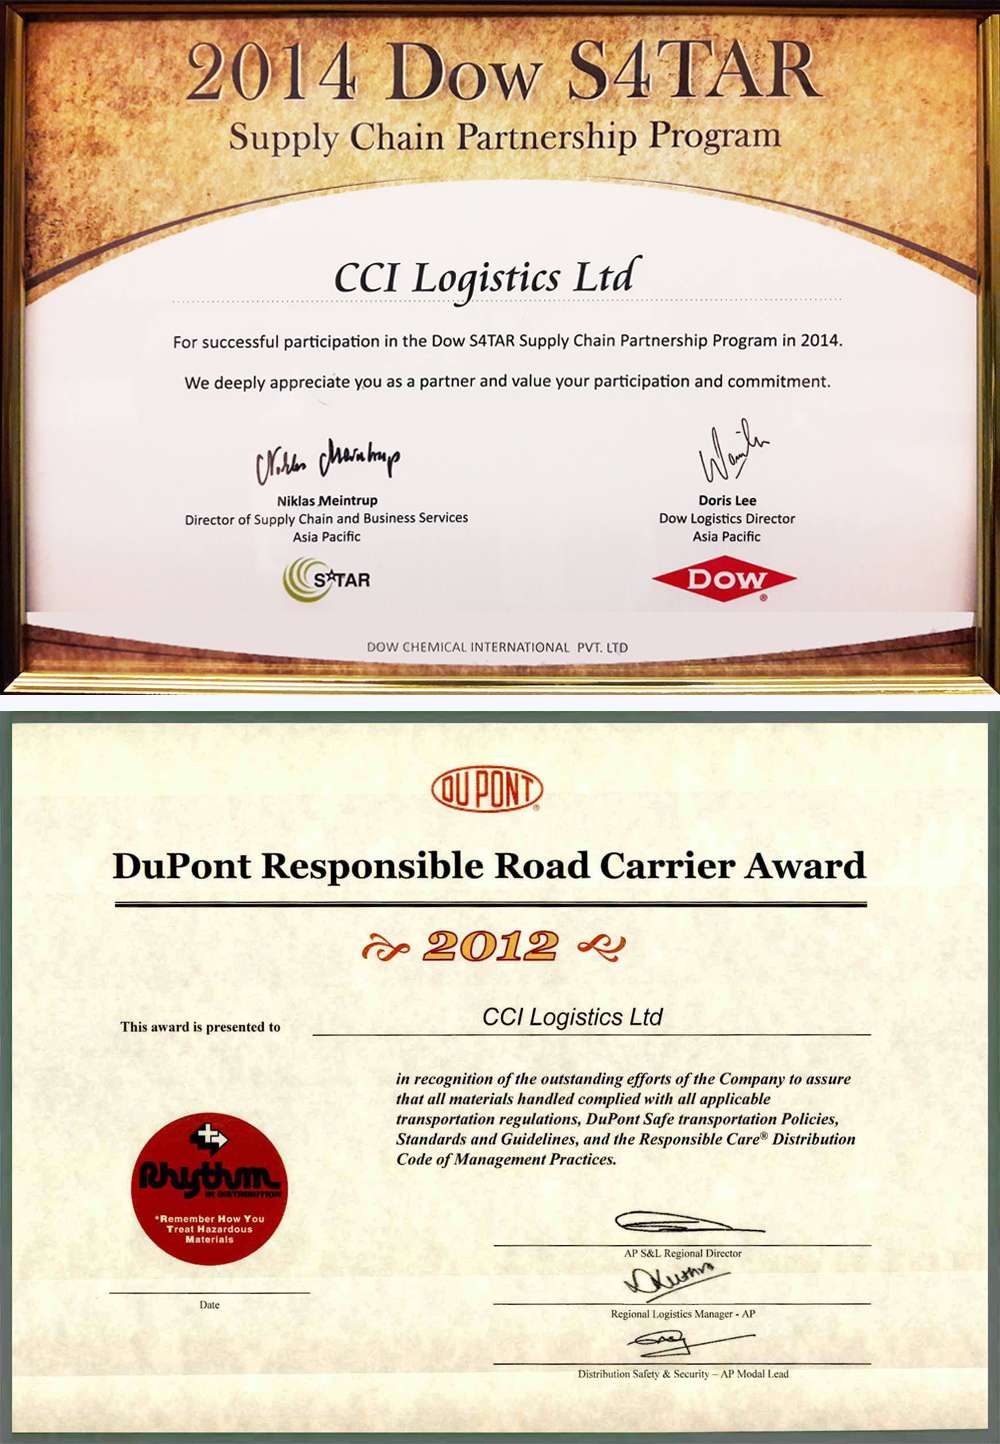 Certifications Cci Logistics